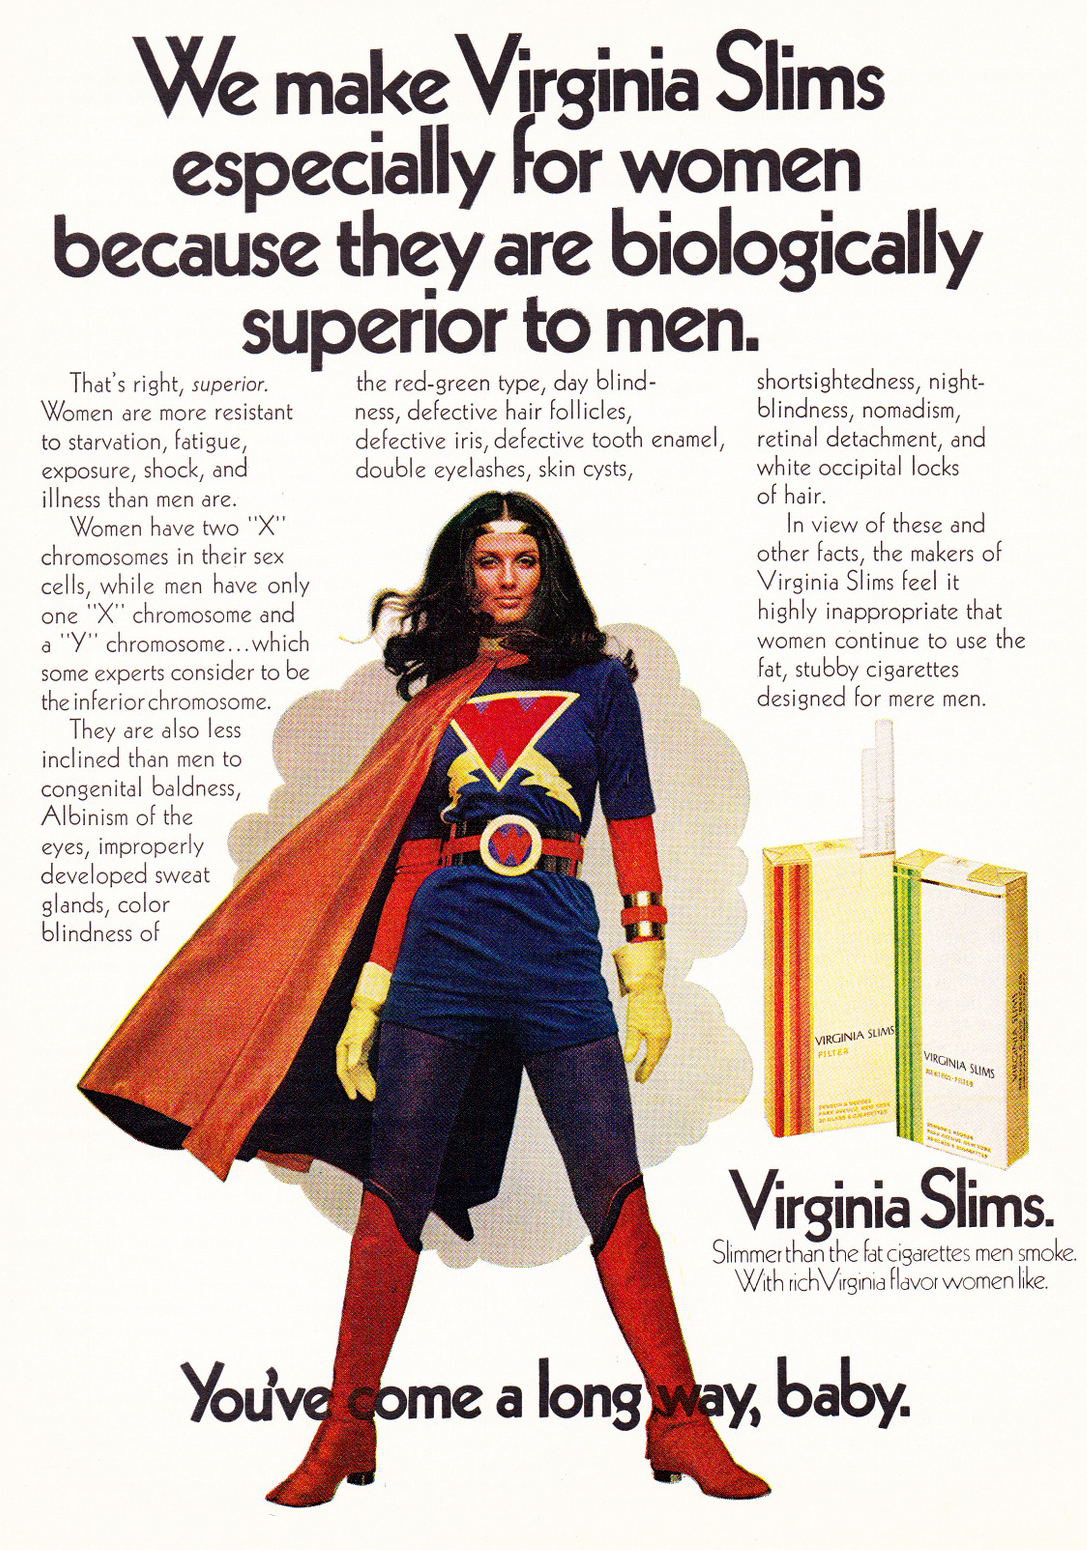 slim female images in advertising The impact of thin idealized media images on body satisfaction: does body appreciation protect women from negative effects  advertising images.